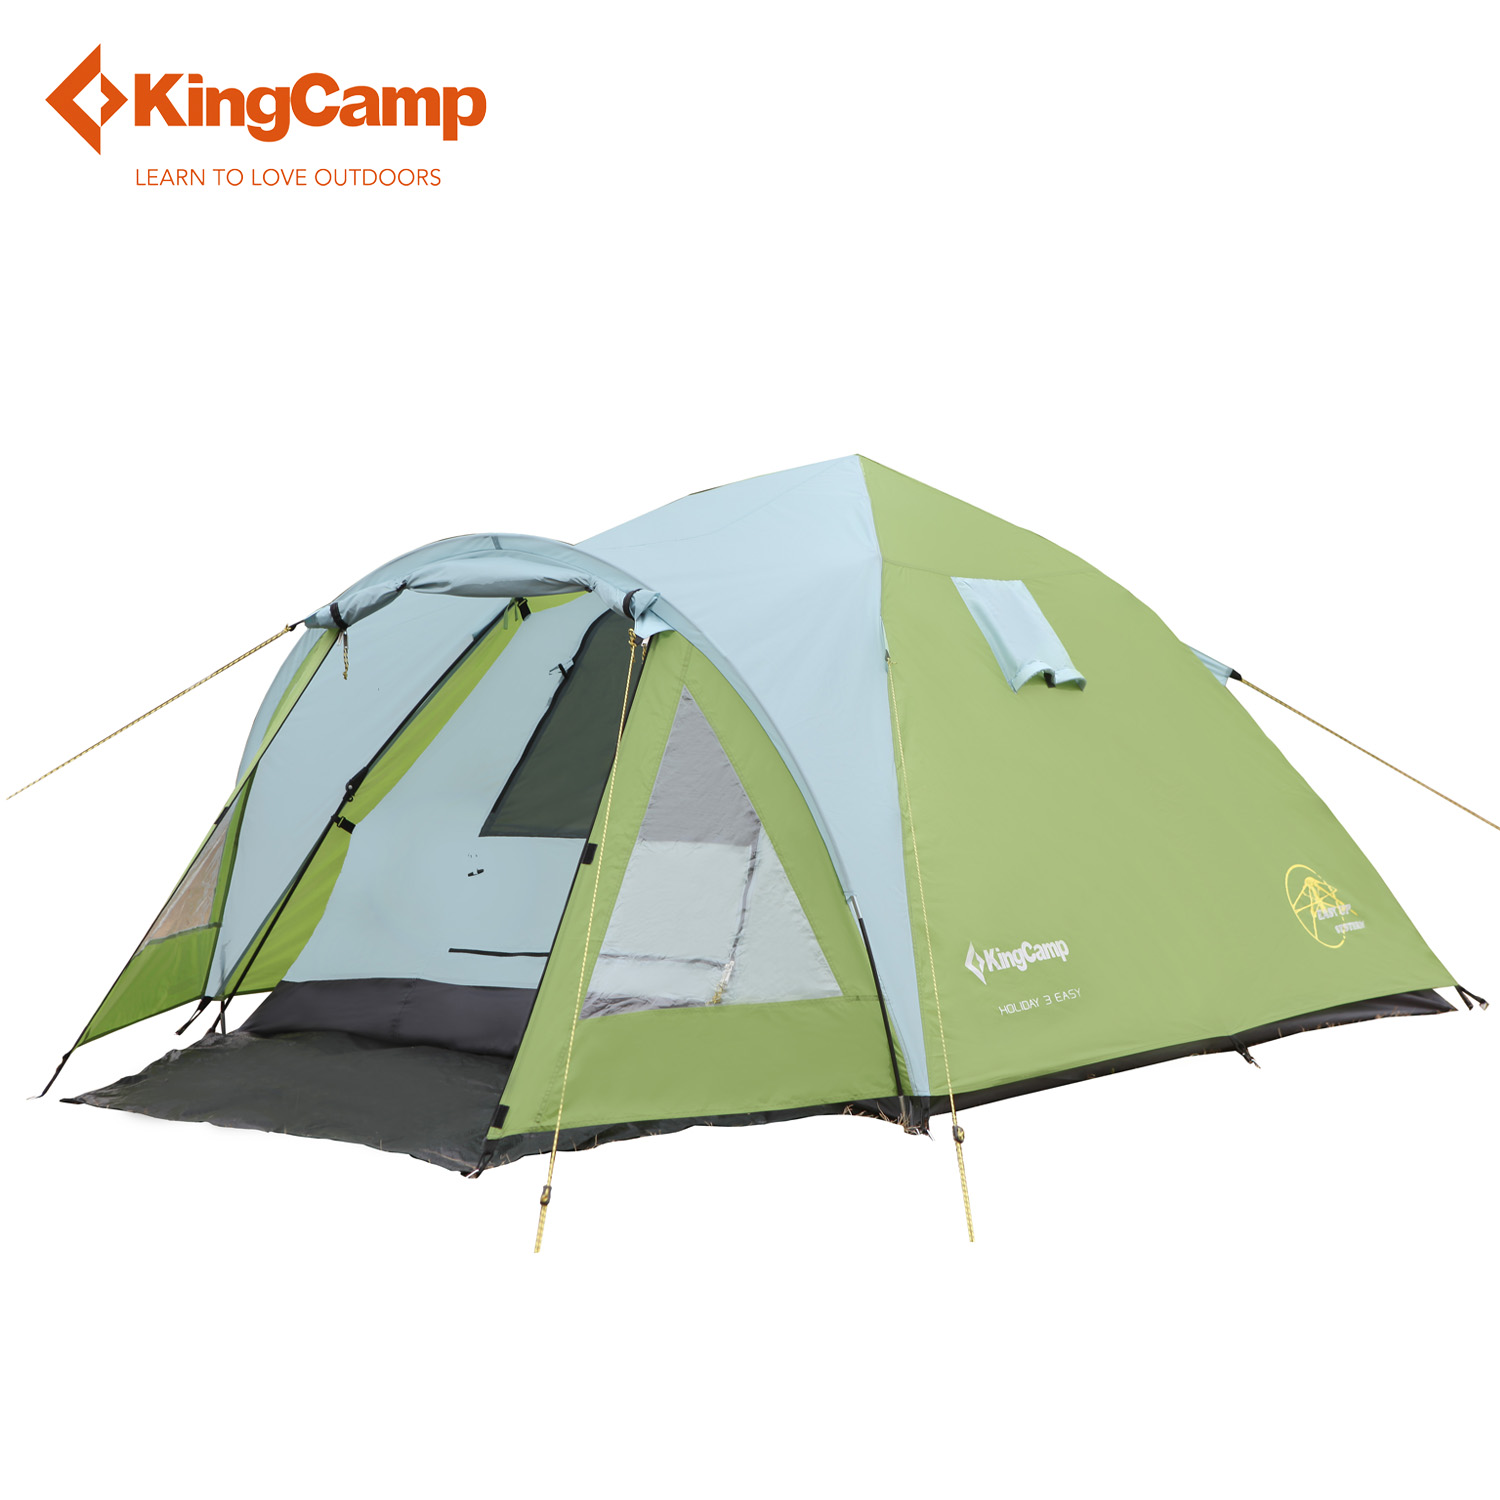 KingCamp Holiday 3-Person 3-Season Outdoor Tent for Family Camping kingcamp camping tent waterproof brand windproof bari fire resistant 4 person 3 season outdoor tent for family camping